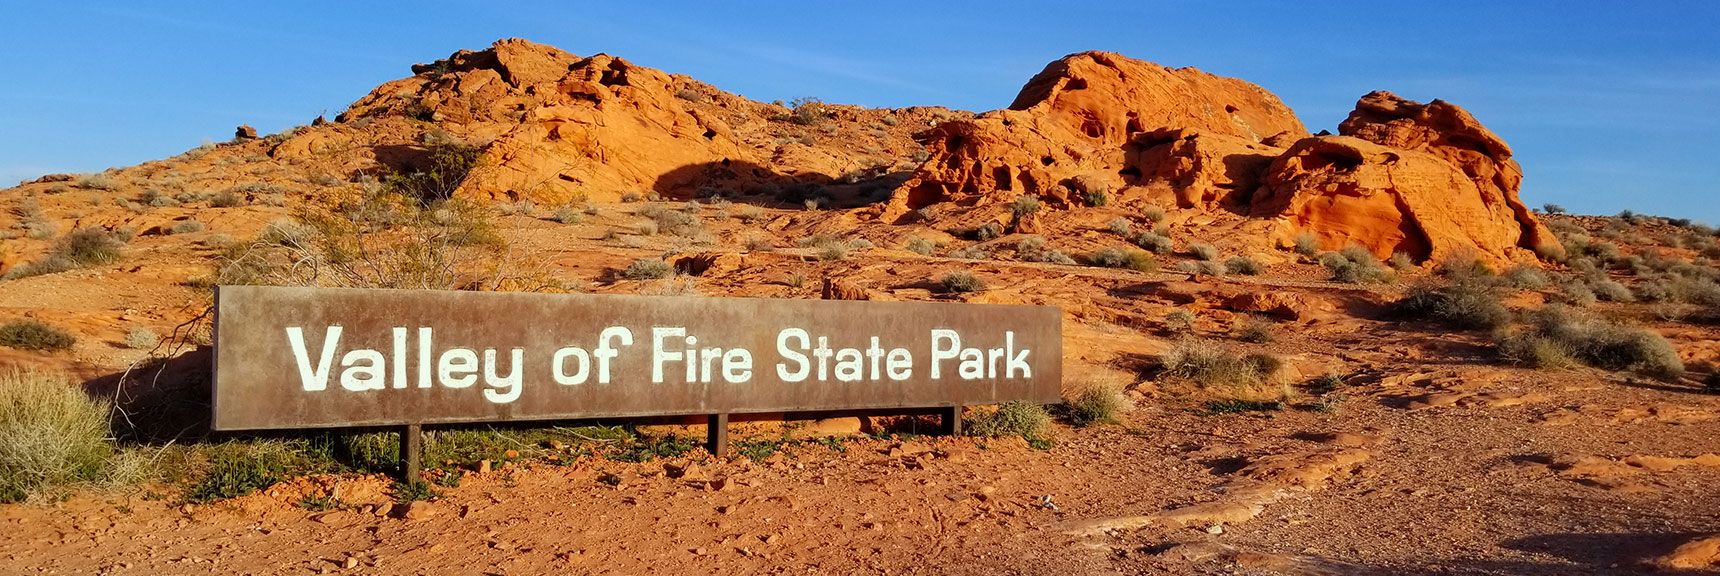 Valley of Fire State Park, Nevada, East Entrance